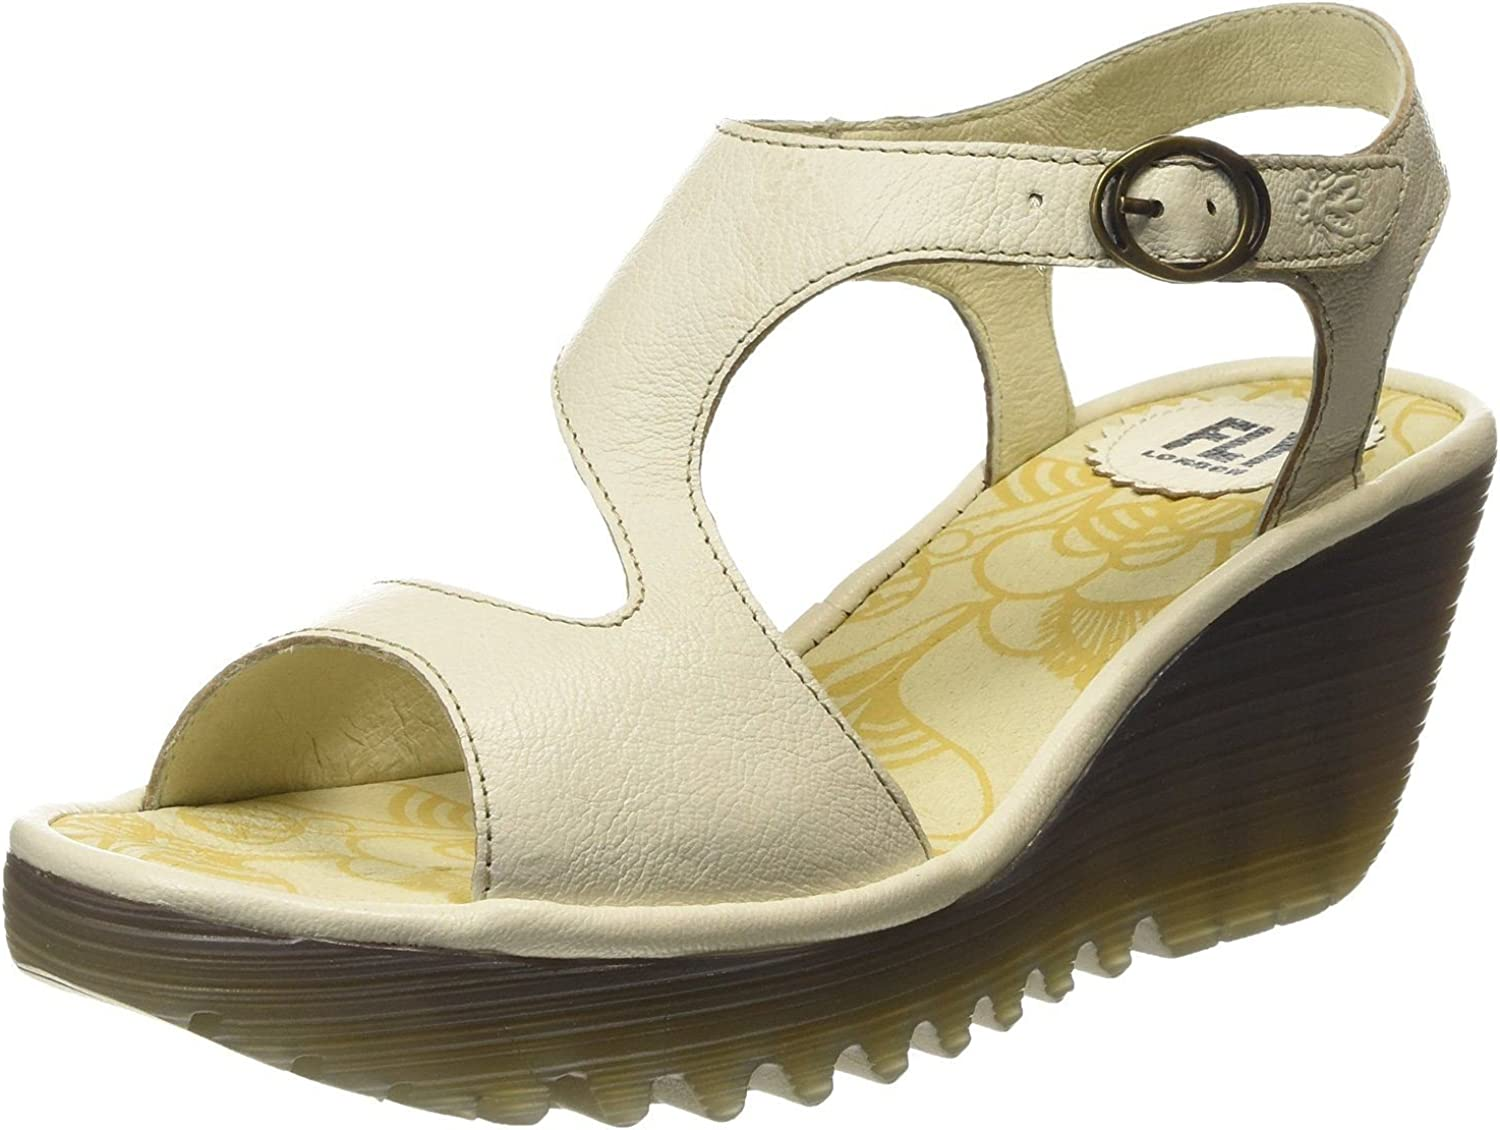 Fly London Yanca Off White Womens Leather Wedge Sandals shoes